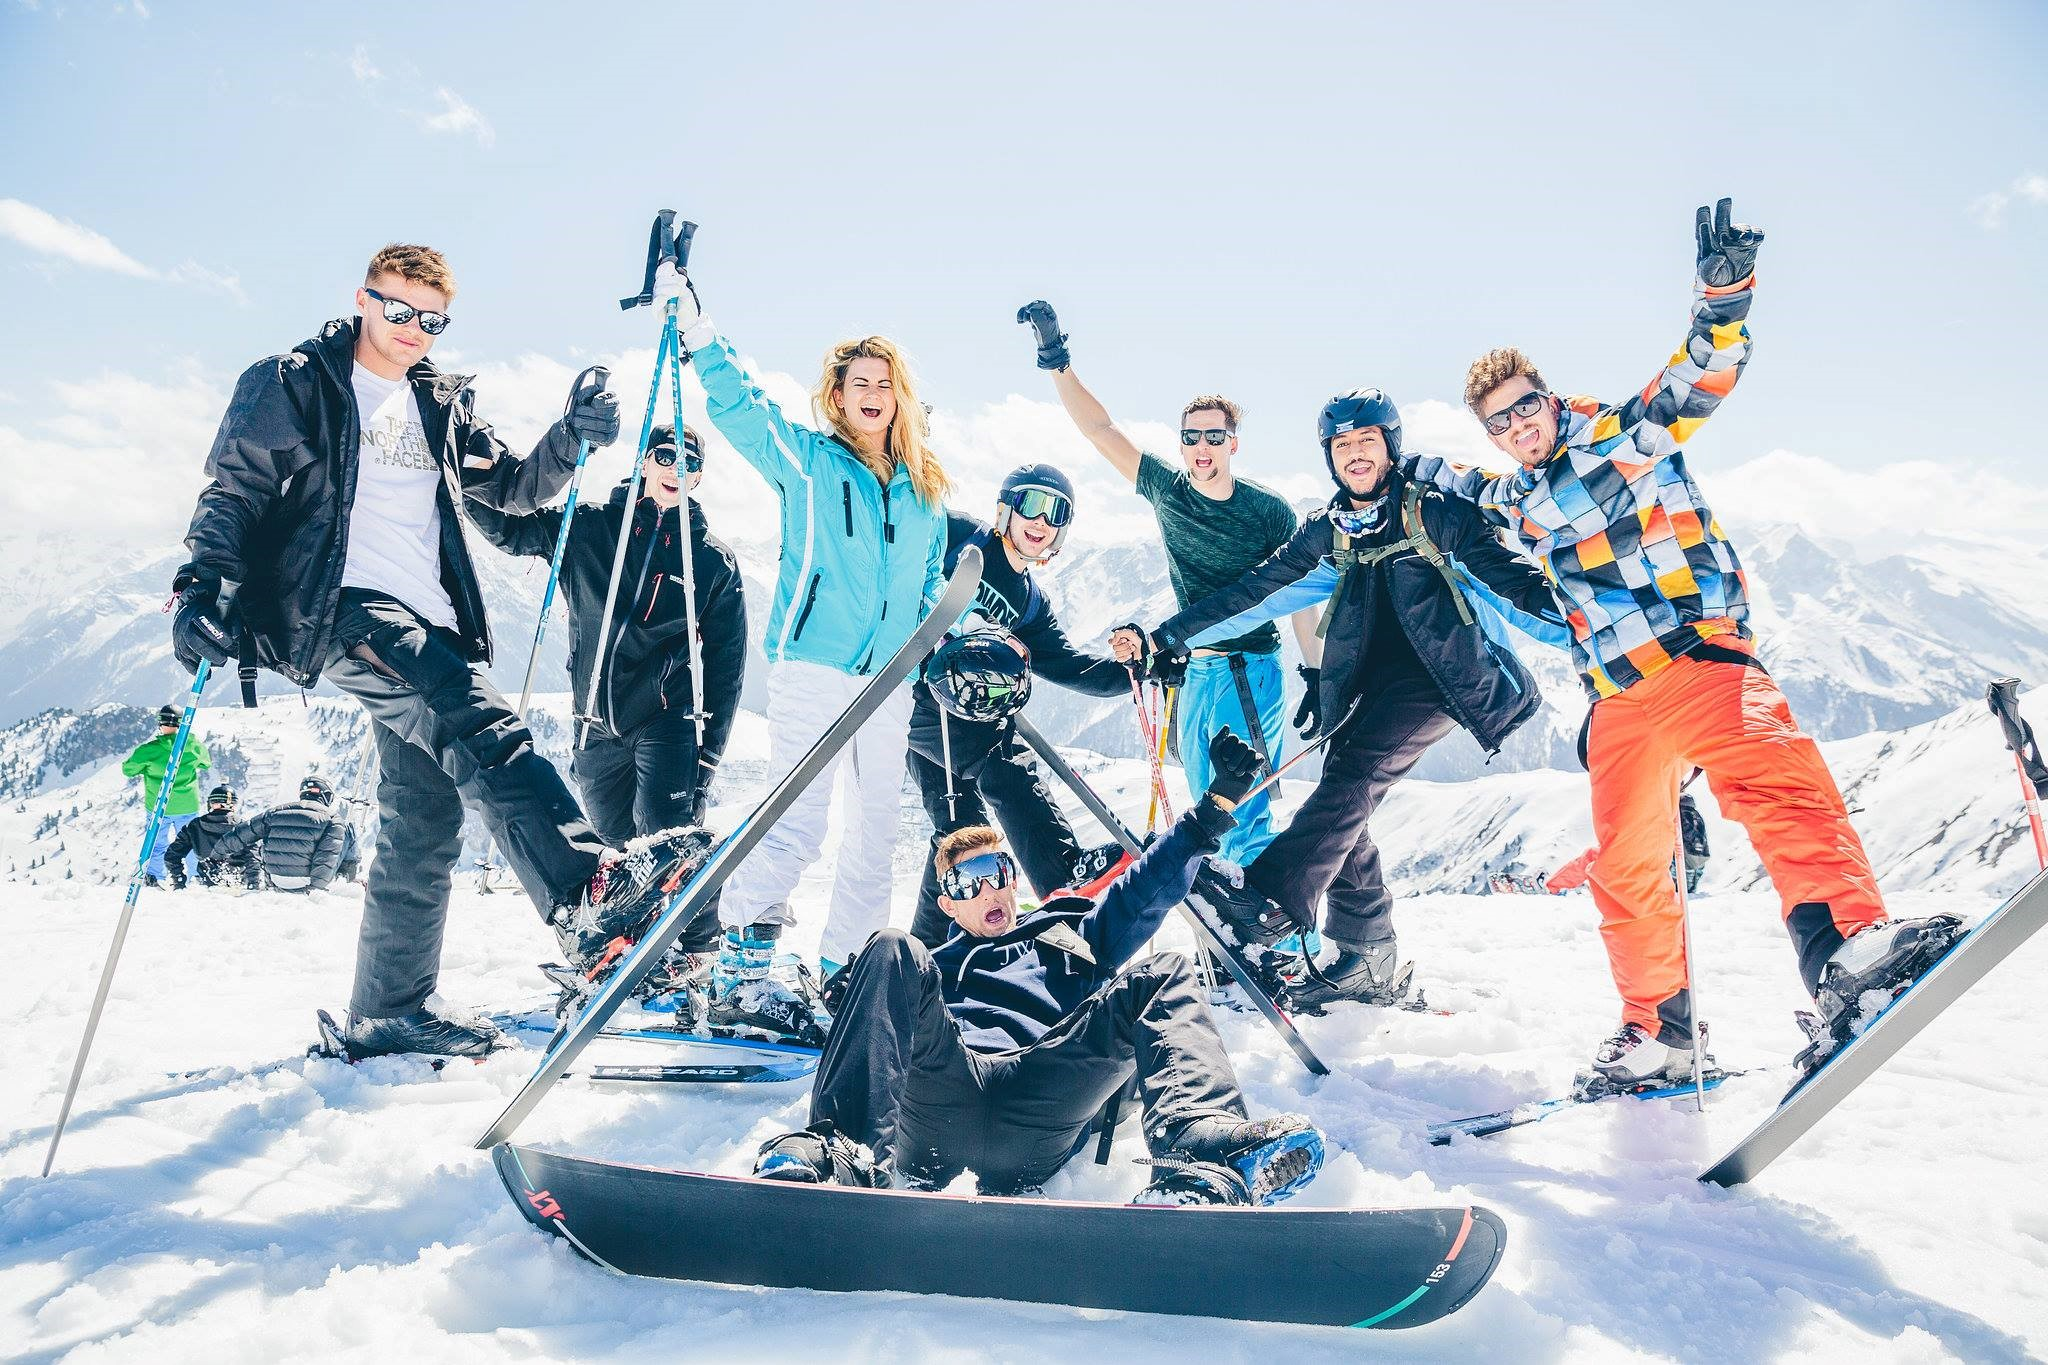 SKI SAFARI# samen cruisen met de monitoren verkleed als party animal